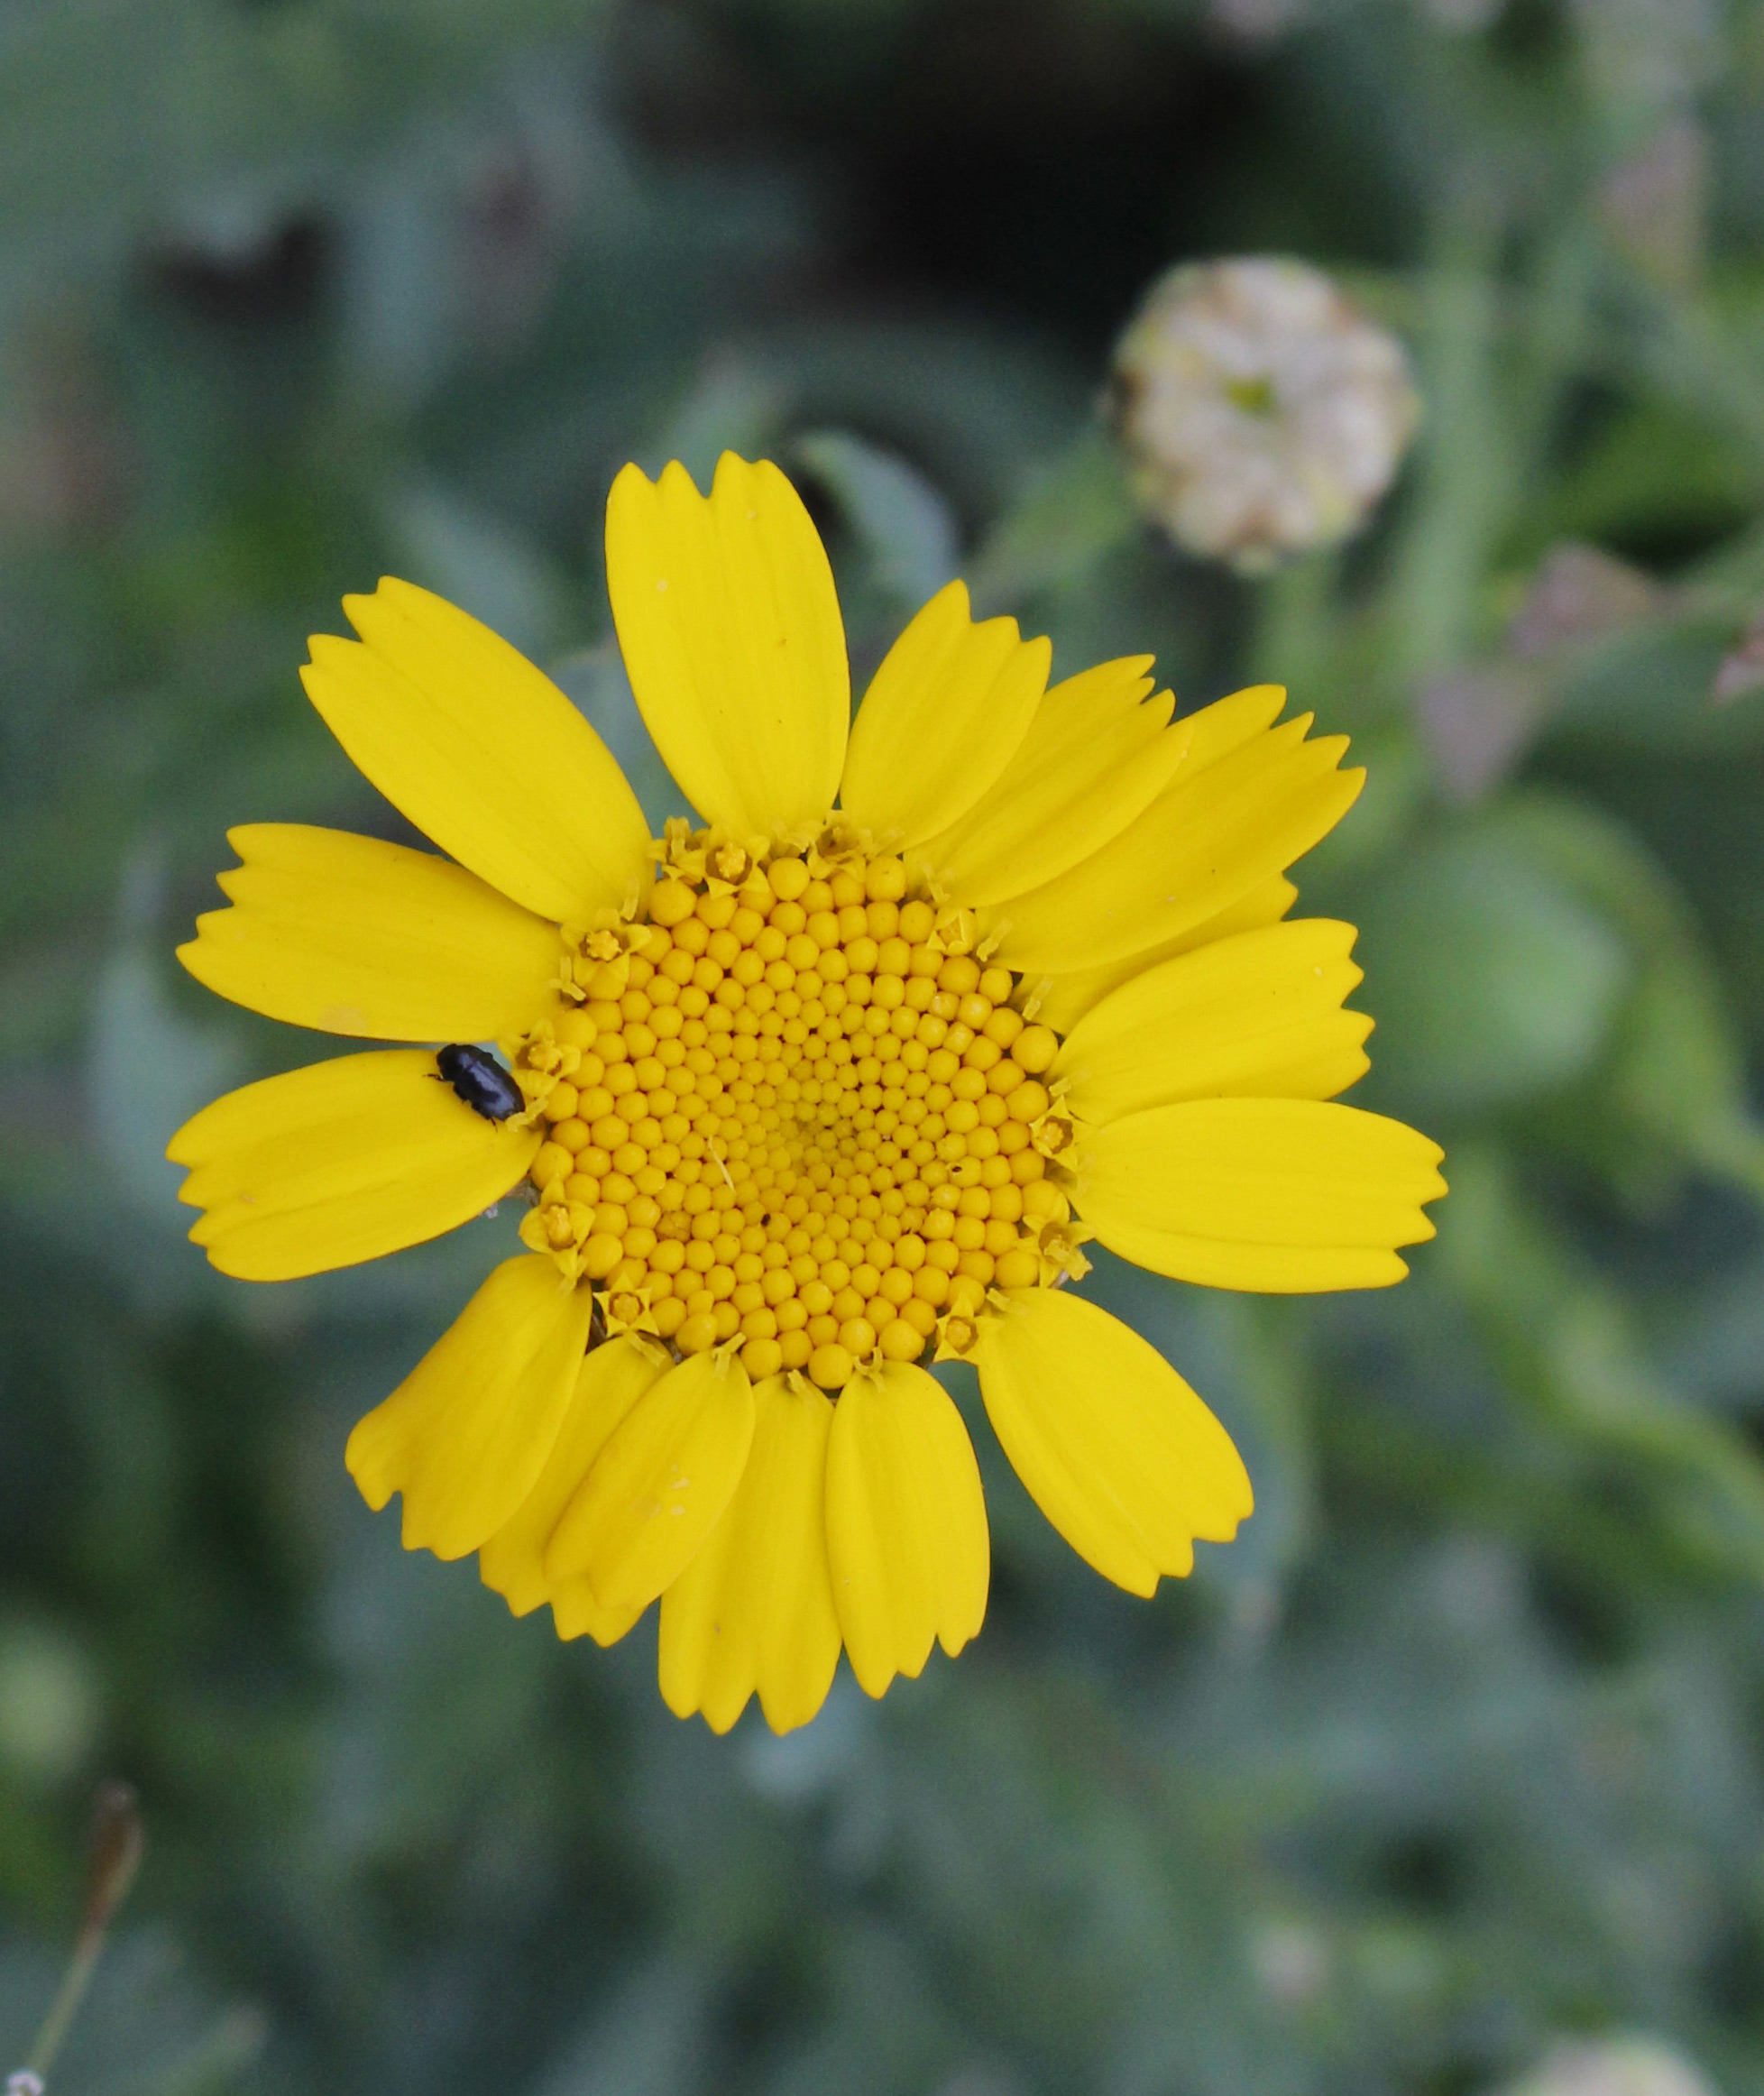 1st Flowering: Corn Marigold 12 July